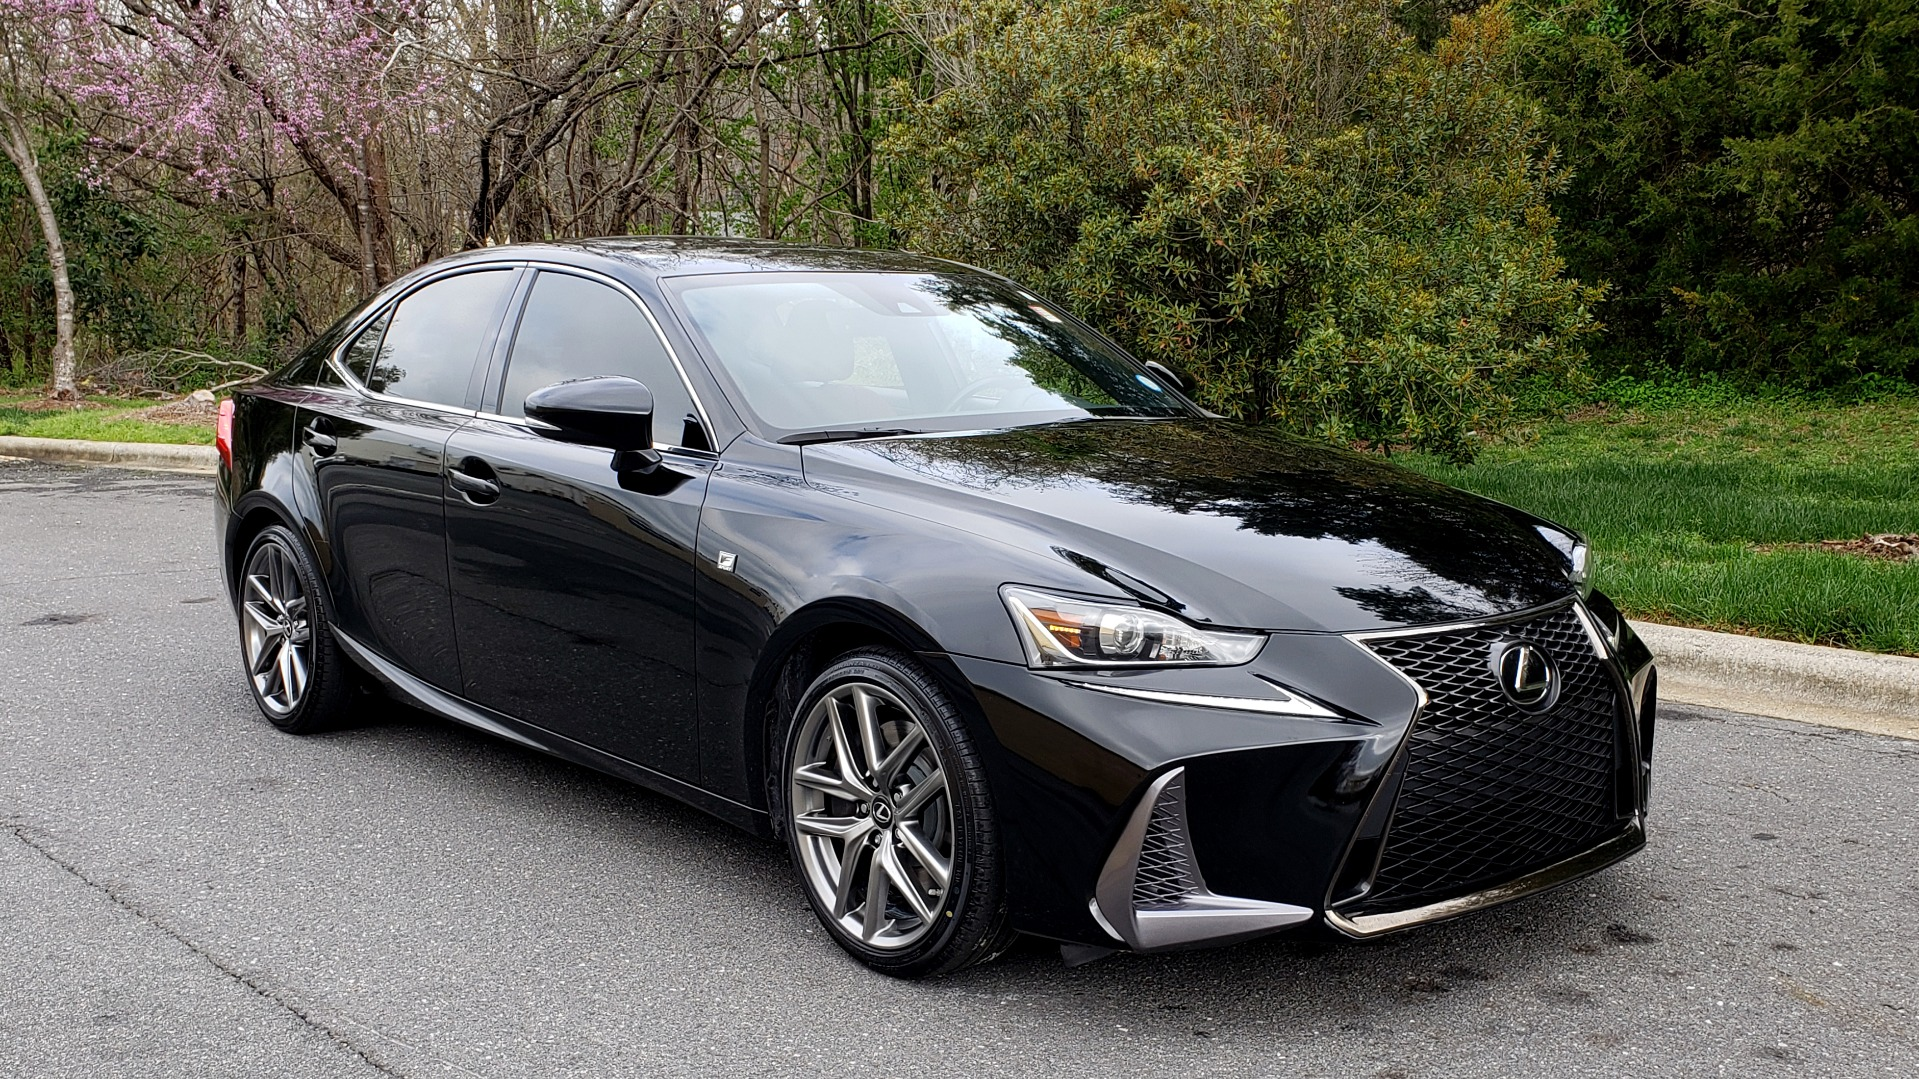 Used 2017 Lexus IS 200T F-SPORT / SUNROOF / REARVIEW / VENT SEATS for sale Sold at Formula Imports in Charlotte NC 28227 4